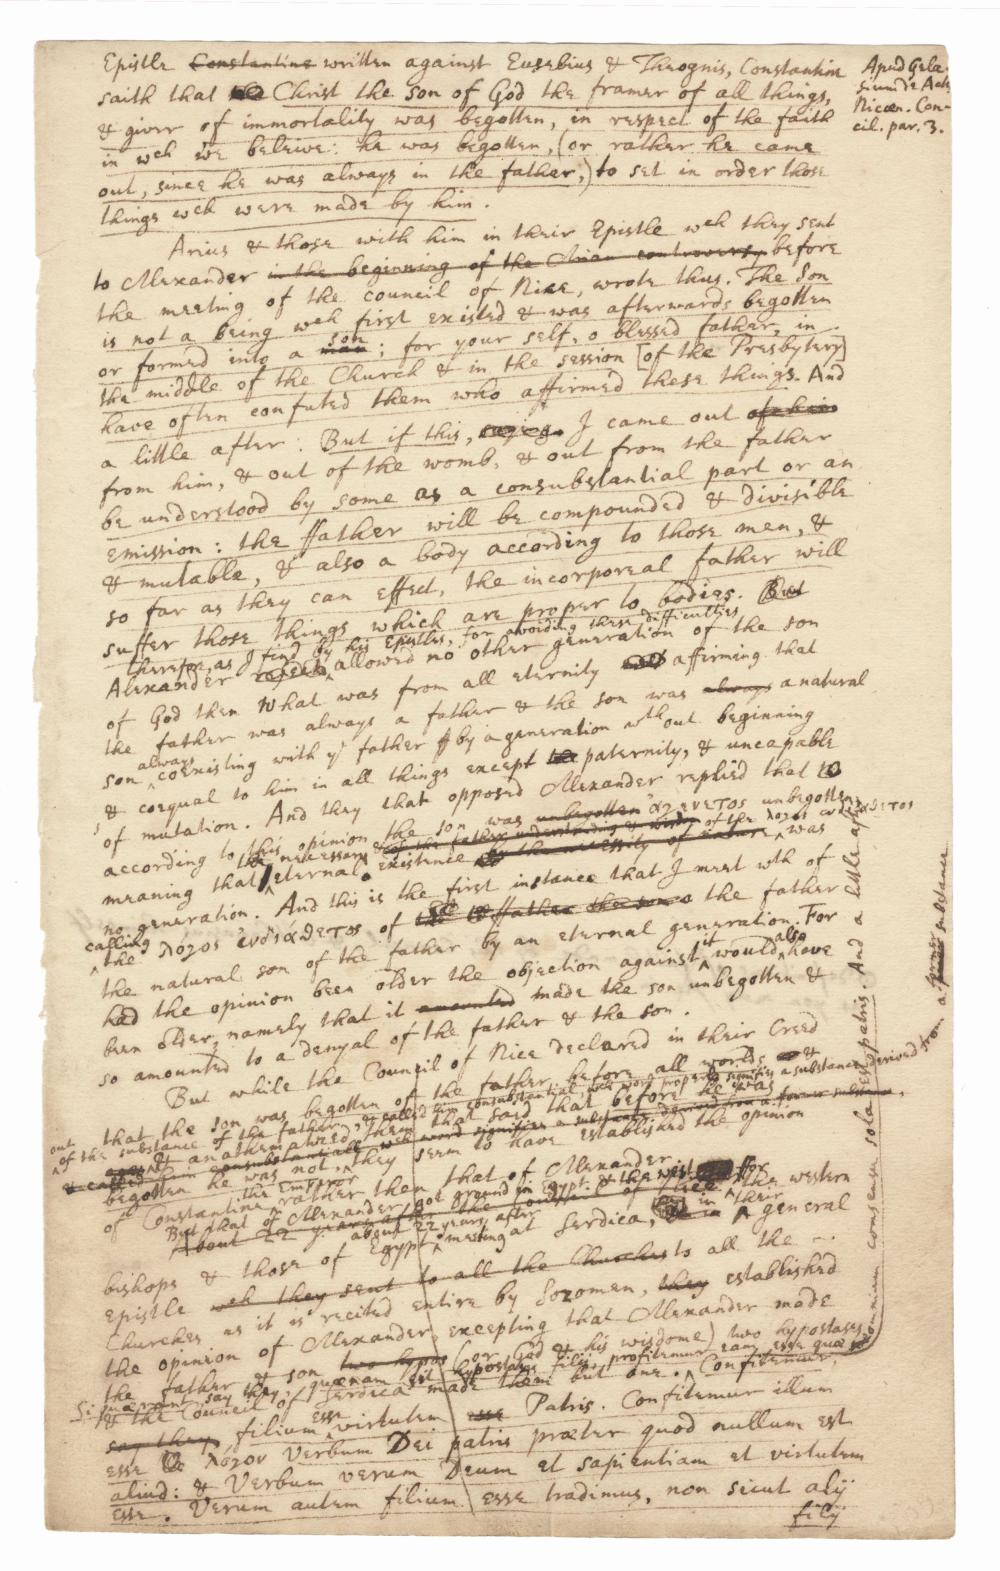 Sir Isaac Newton Superb Important Autograph Manuscript: Heresy, Expounding Religious Views that Colored His Scientific Works Including Principia!